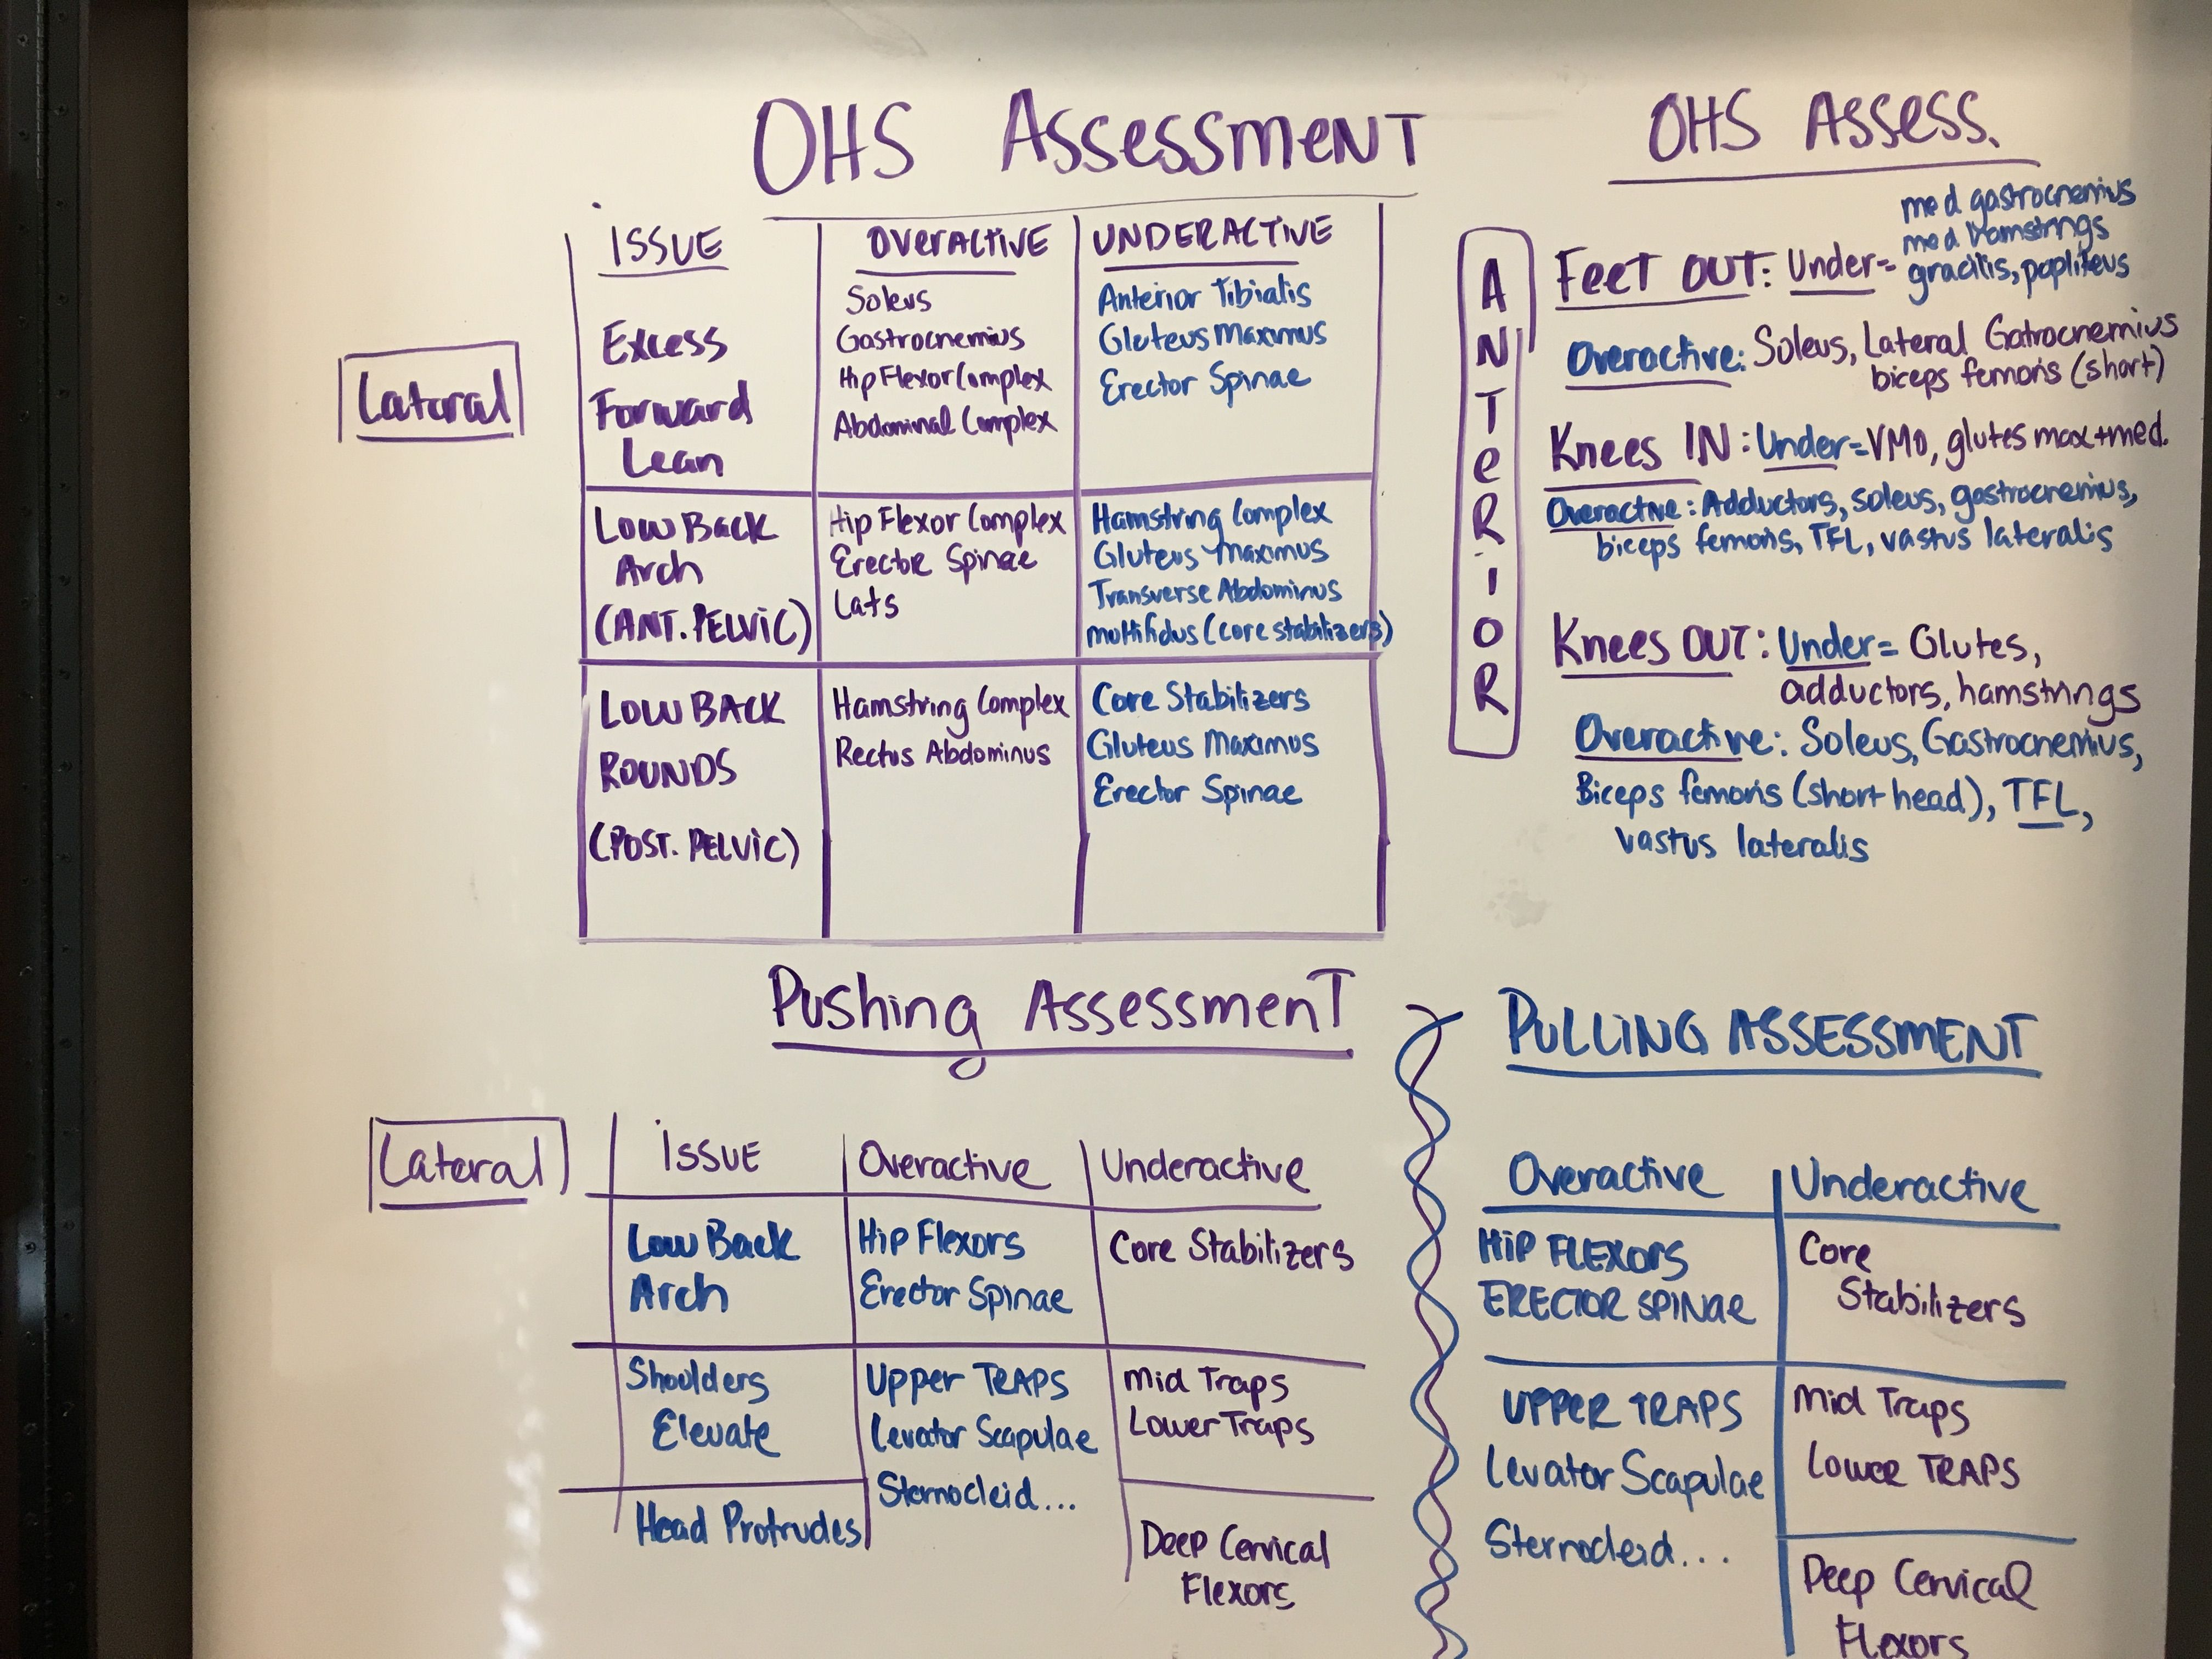 Ohs Assessment Nasm Nasm Pinterest Assessment And Lifestyle